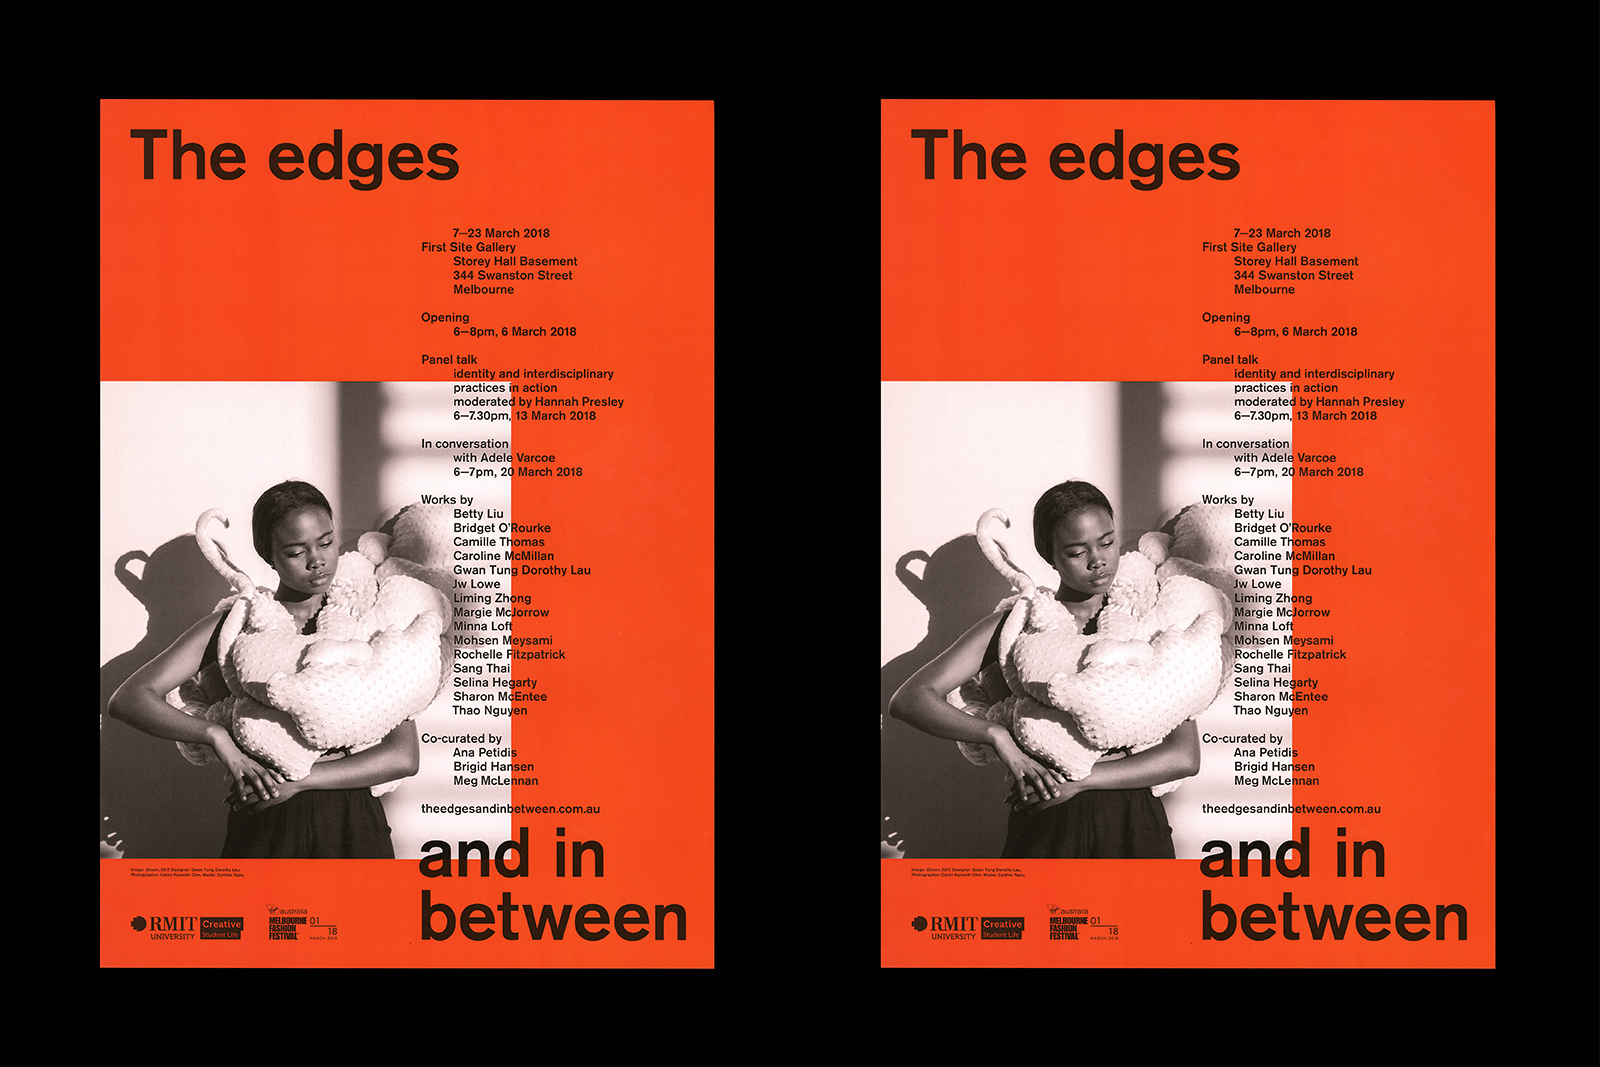 the_edges_and_in_between_poster_megmclennan.jpg